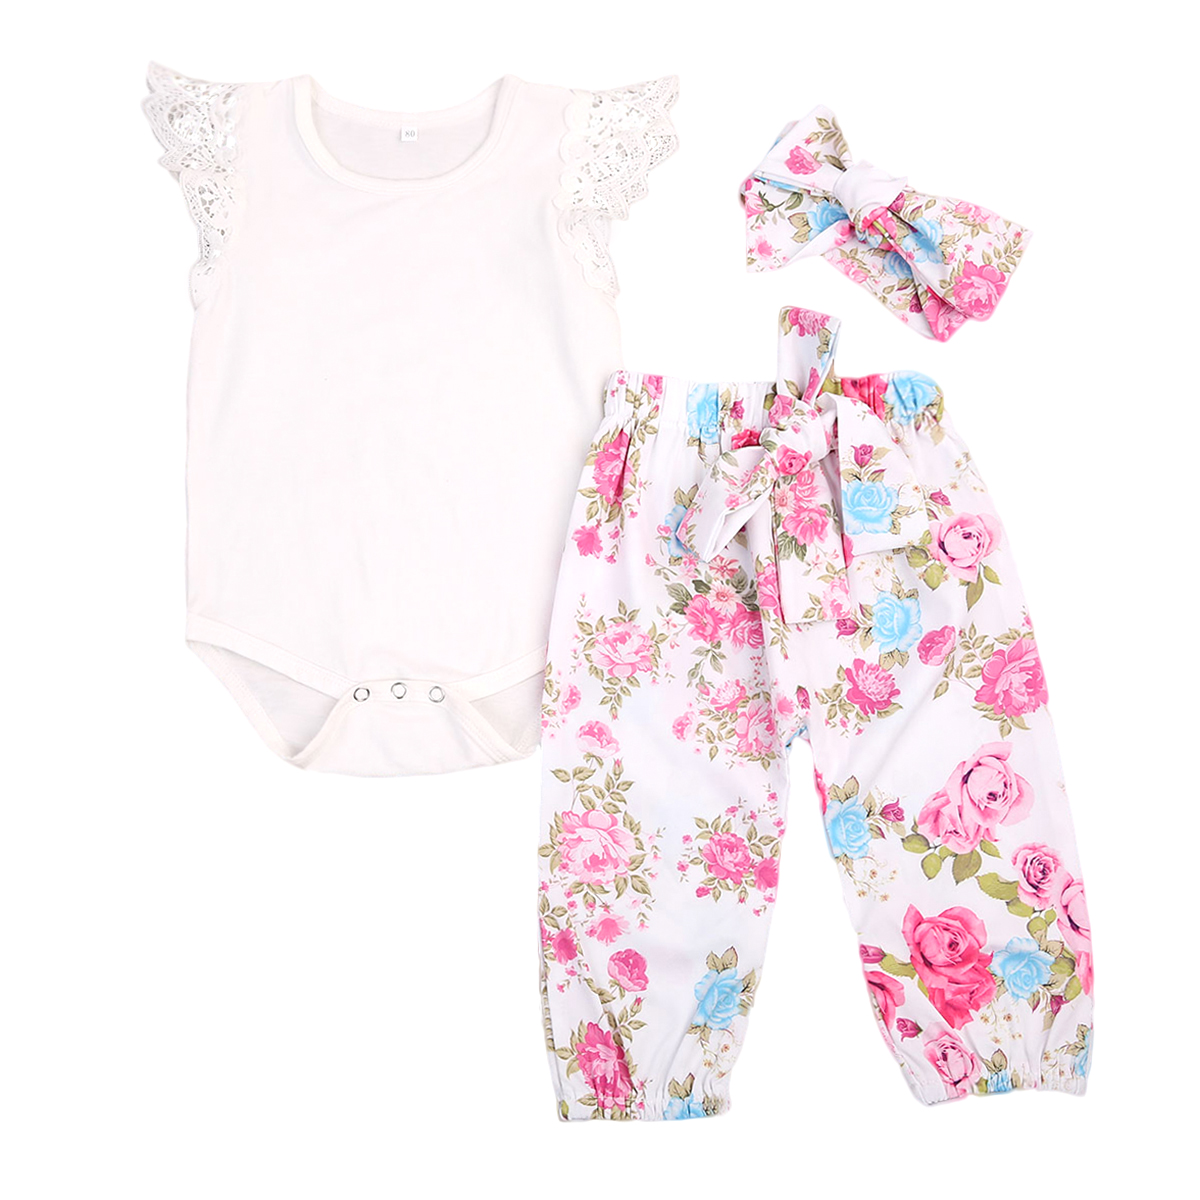 US Stock Floral Newborn Baby Girls Lace Romper Pants Headband Outfit Set Clothes Infant Toddler Girl Brief Clothing Set Playsuit 2017 newborn baby boy girl clothes floral infant bebes romper bodysuit and bloomers bottom 2pcs outfit bebek giyim clothing